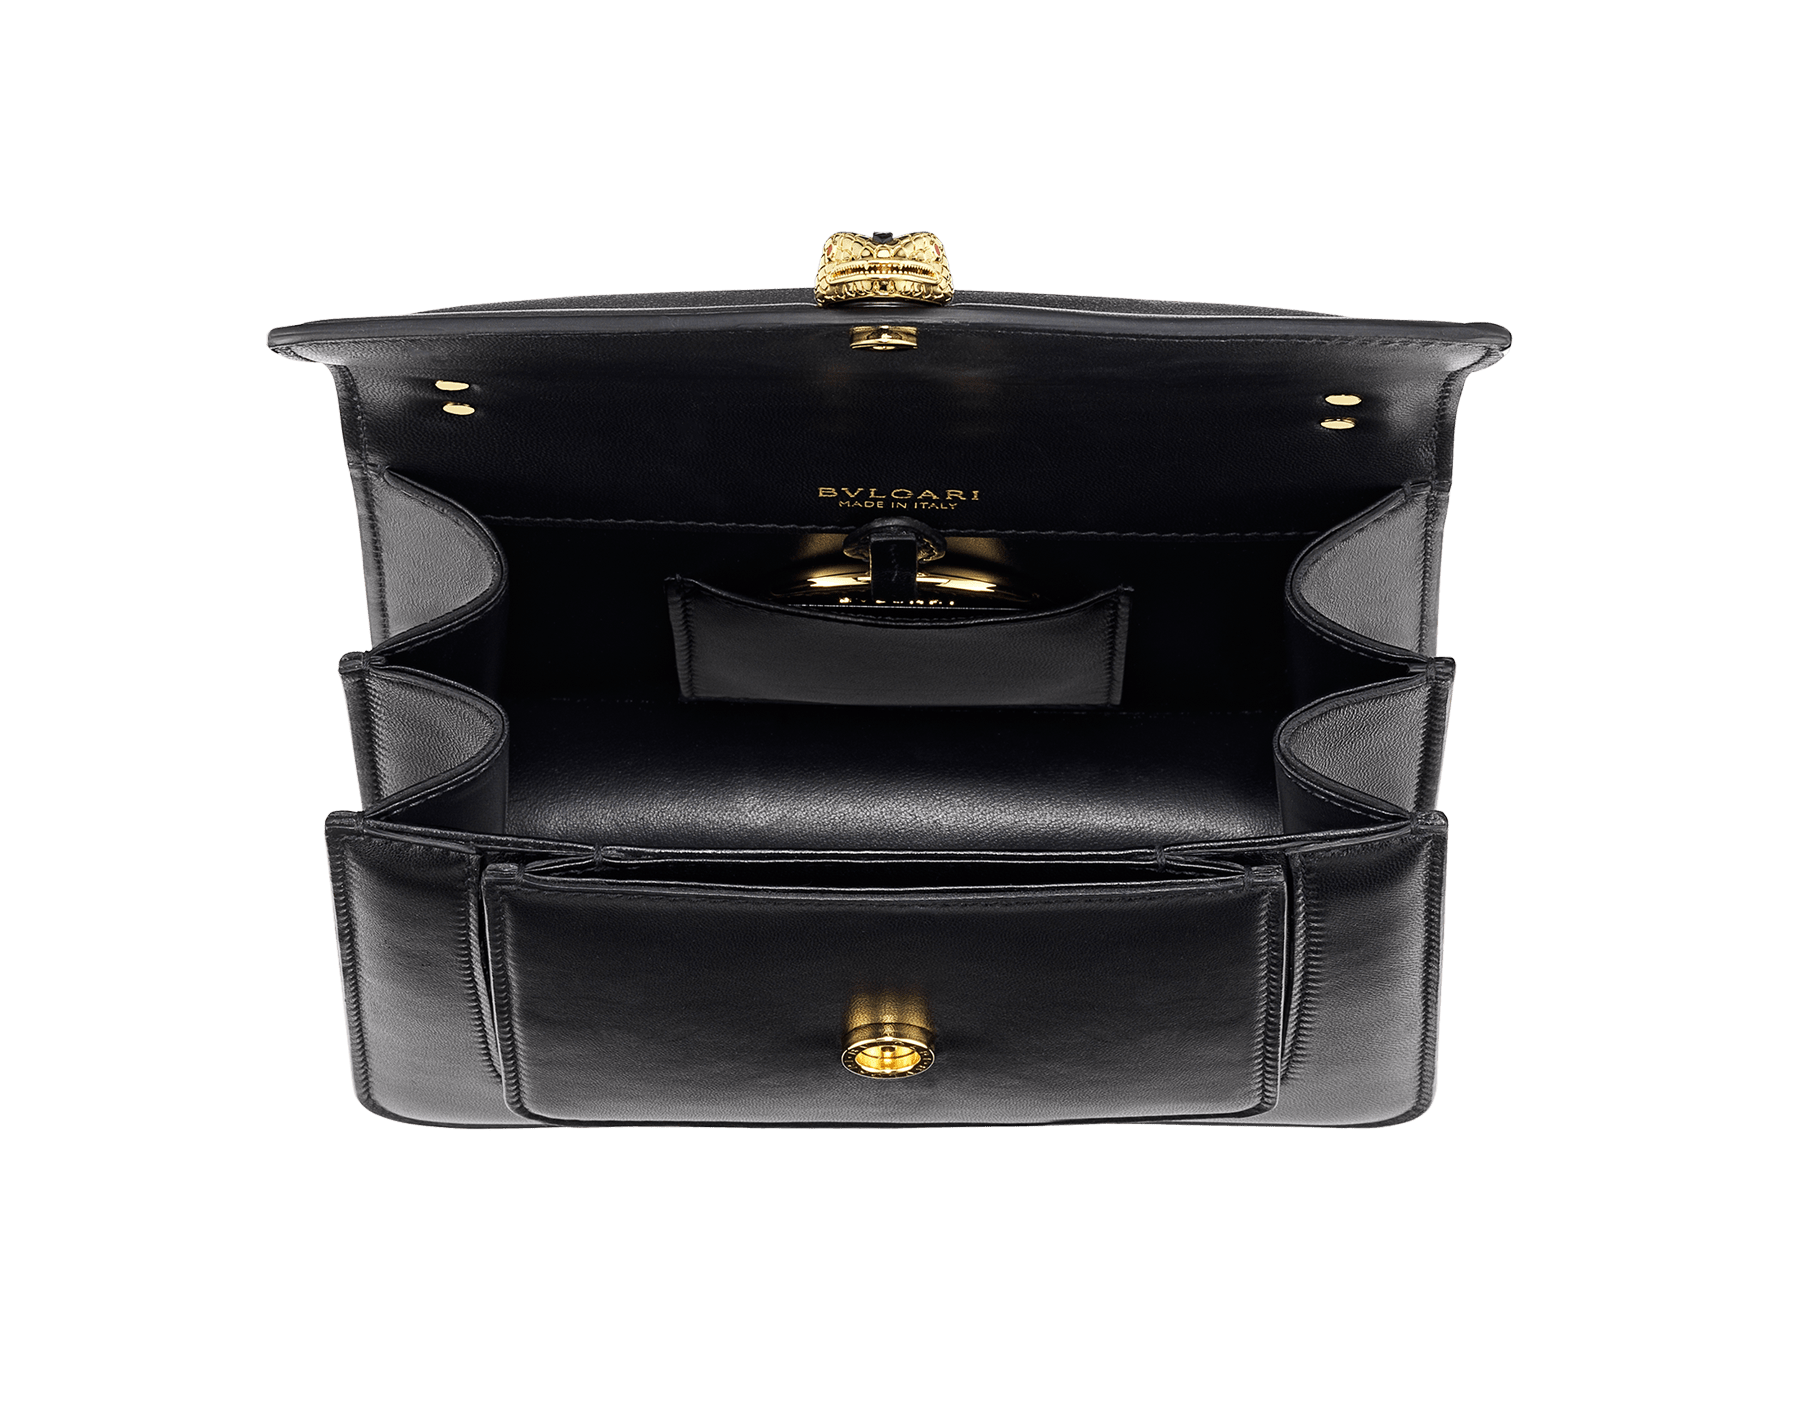 """""""Serpenti Forever"""" small maxi chain crossbody bag in black nappa leather, with black nappa leather inner lining. New Serpenti head closure in gold-plated brass, finished with small black onyx scales in the middle, and red enamel eyes. 291050 image 6"""